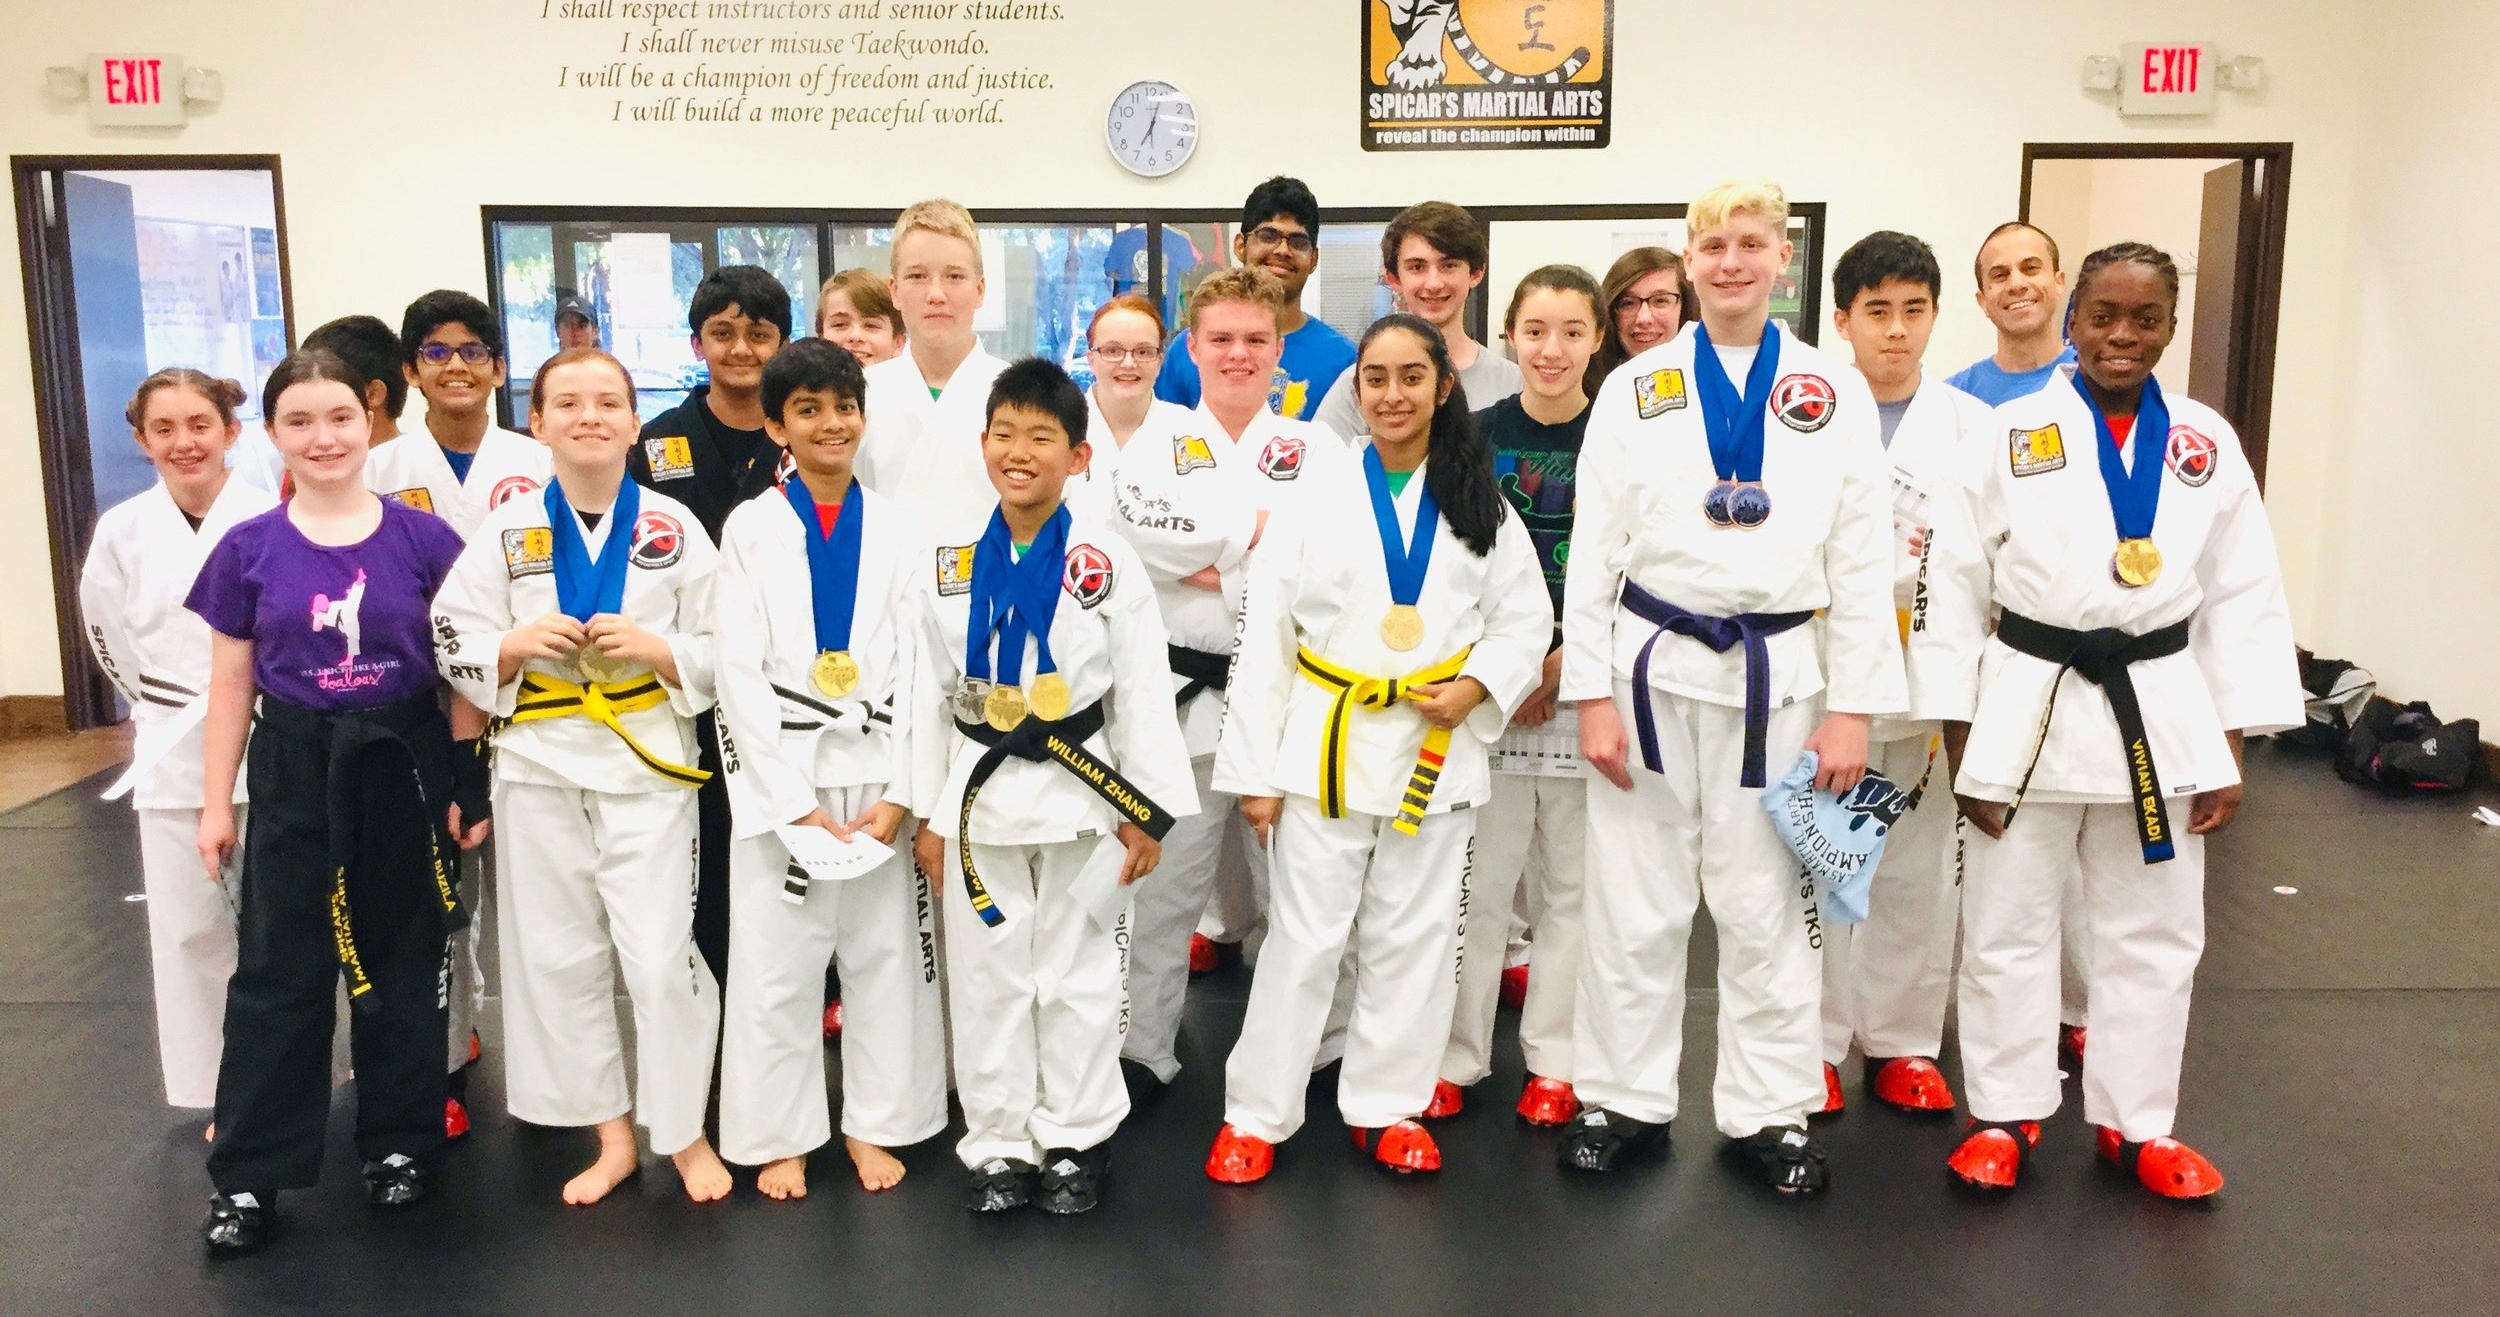 Spicar's have around 100 teens training in martial arts.